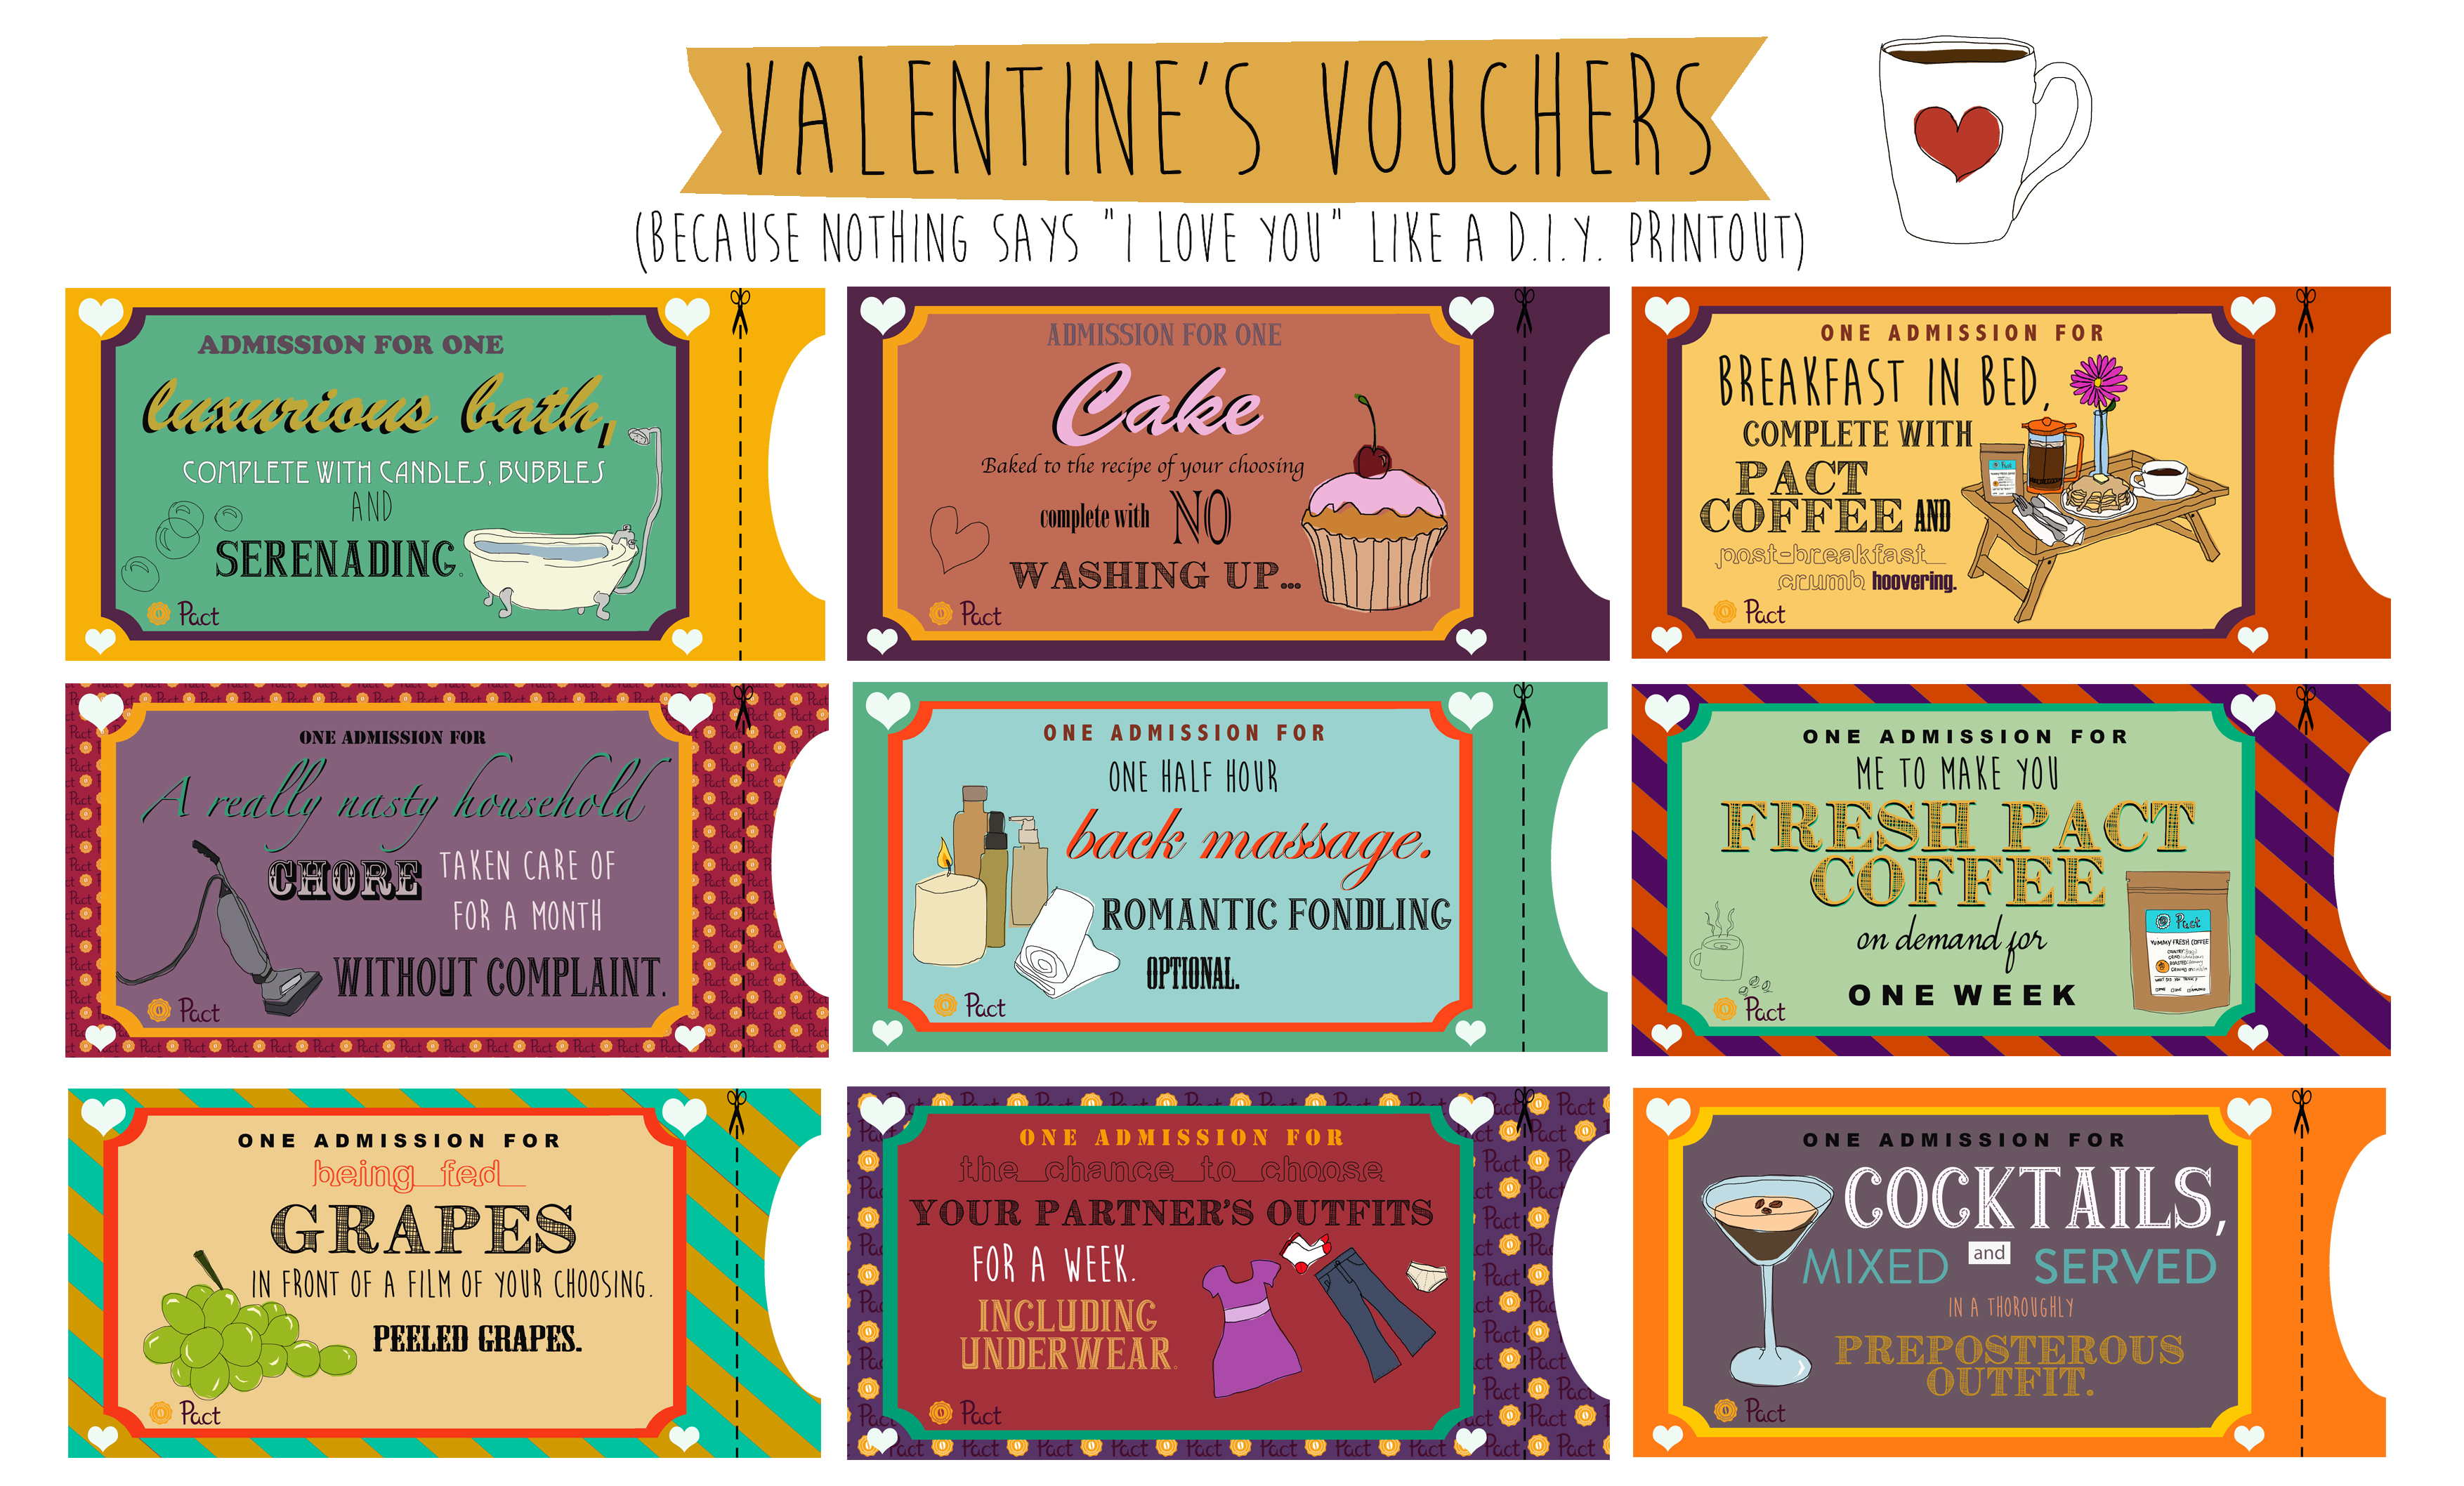 Free Vouchers For Your Valentine Pact Coffee Blog